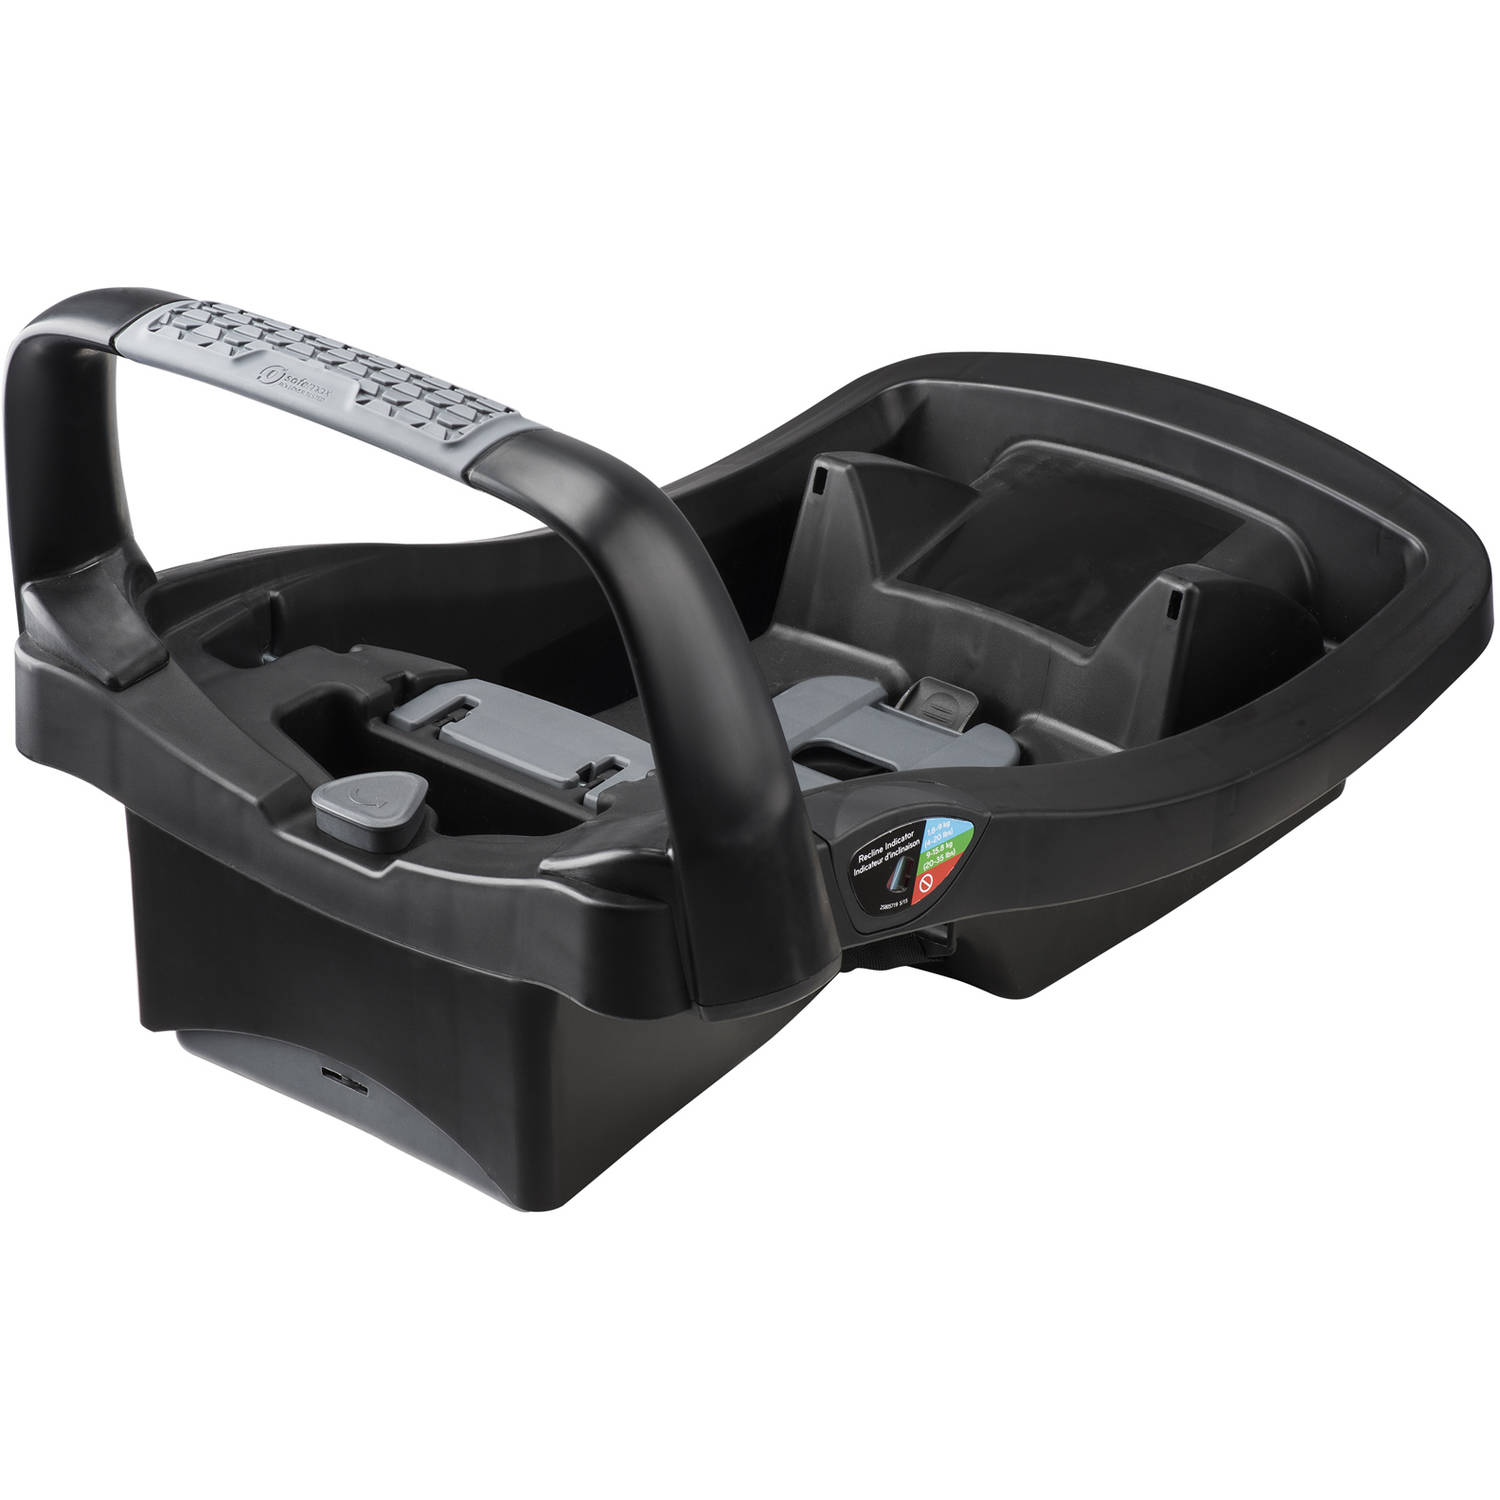 Evenflo SafeMax Infant Car Seat Base, Black